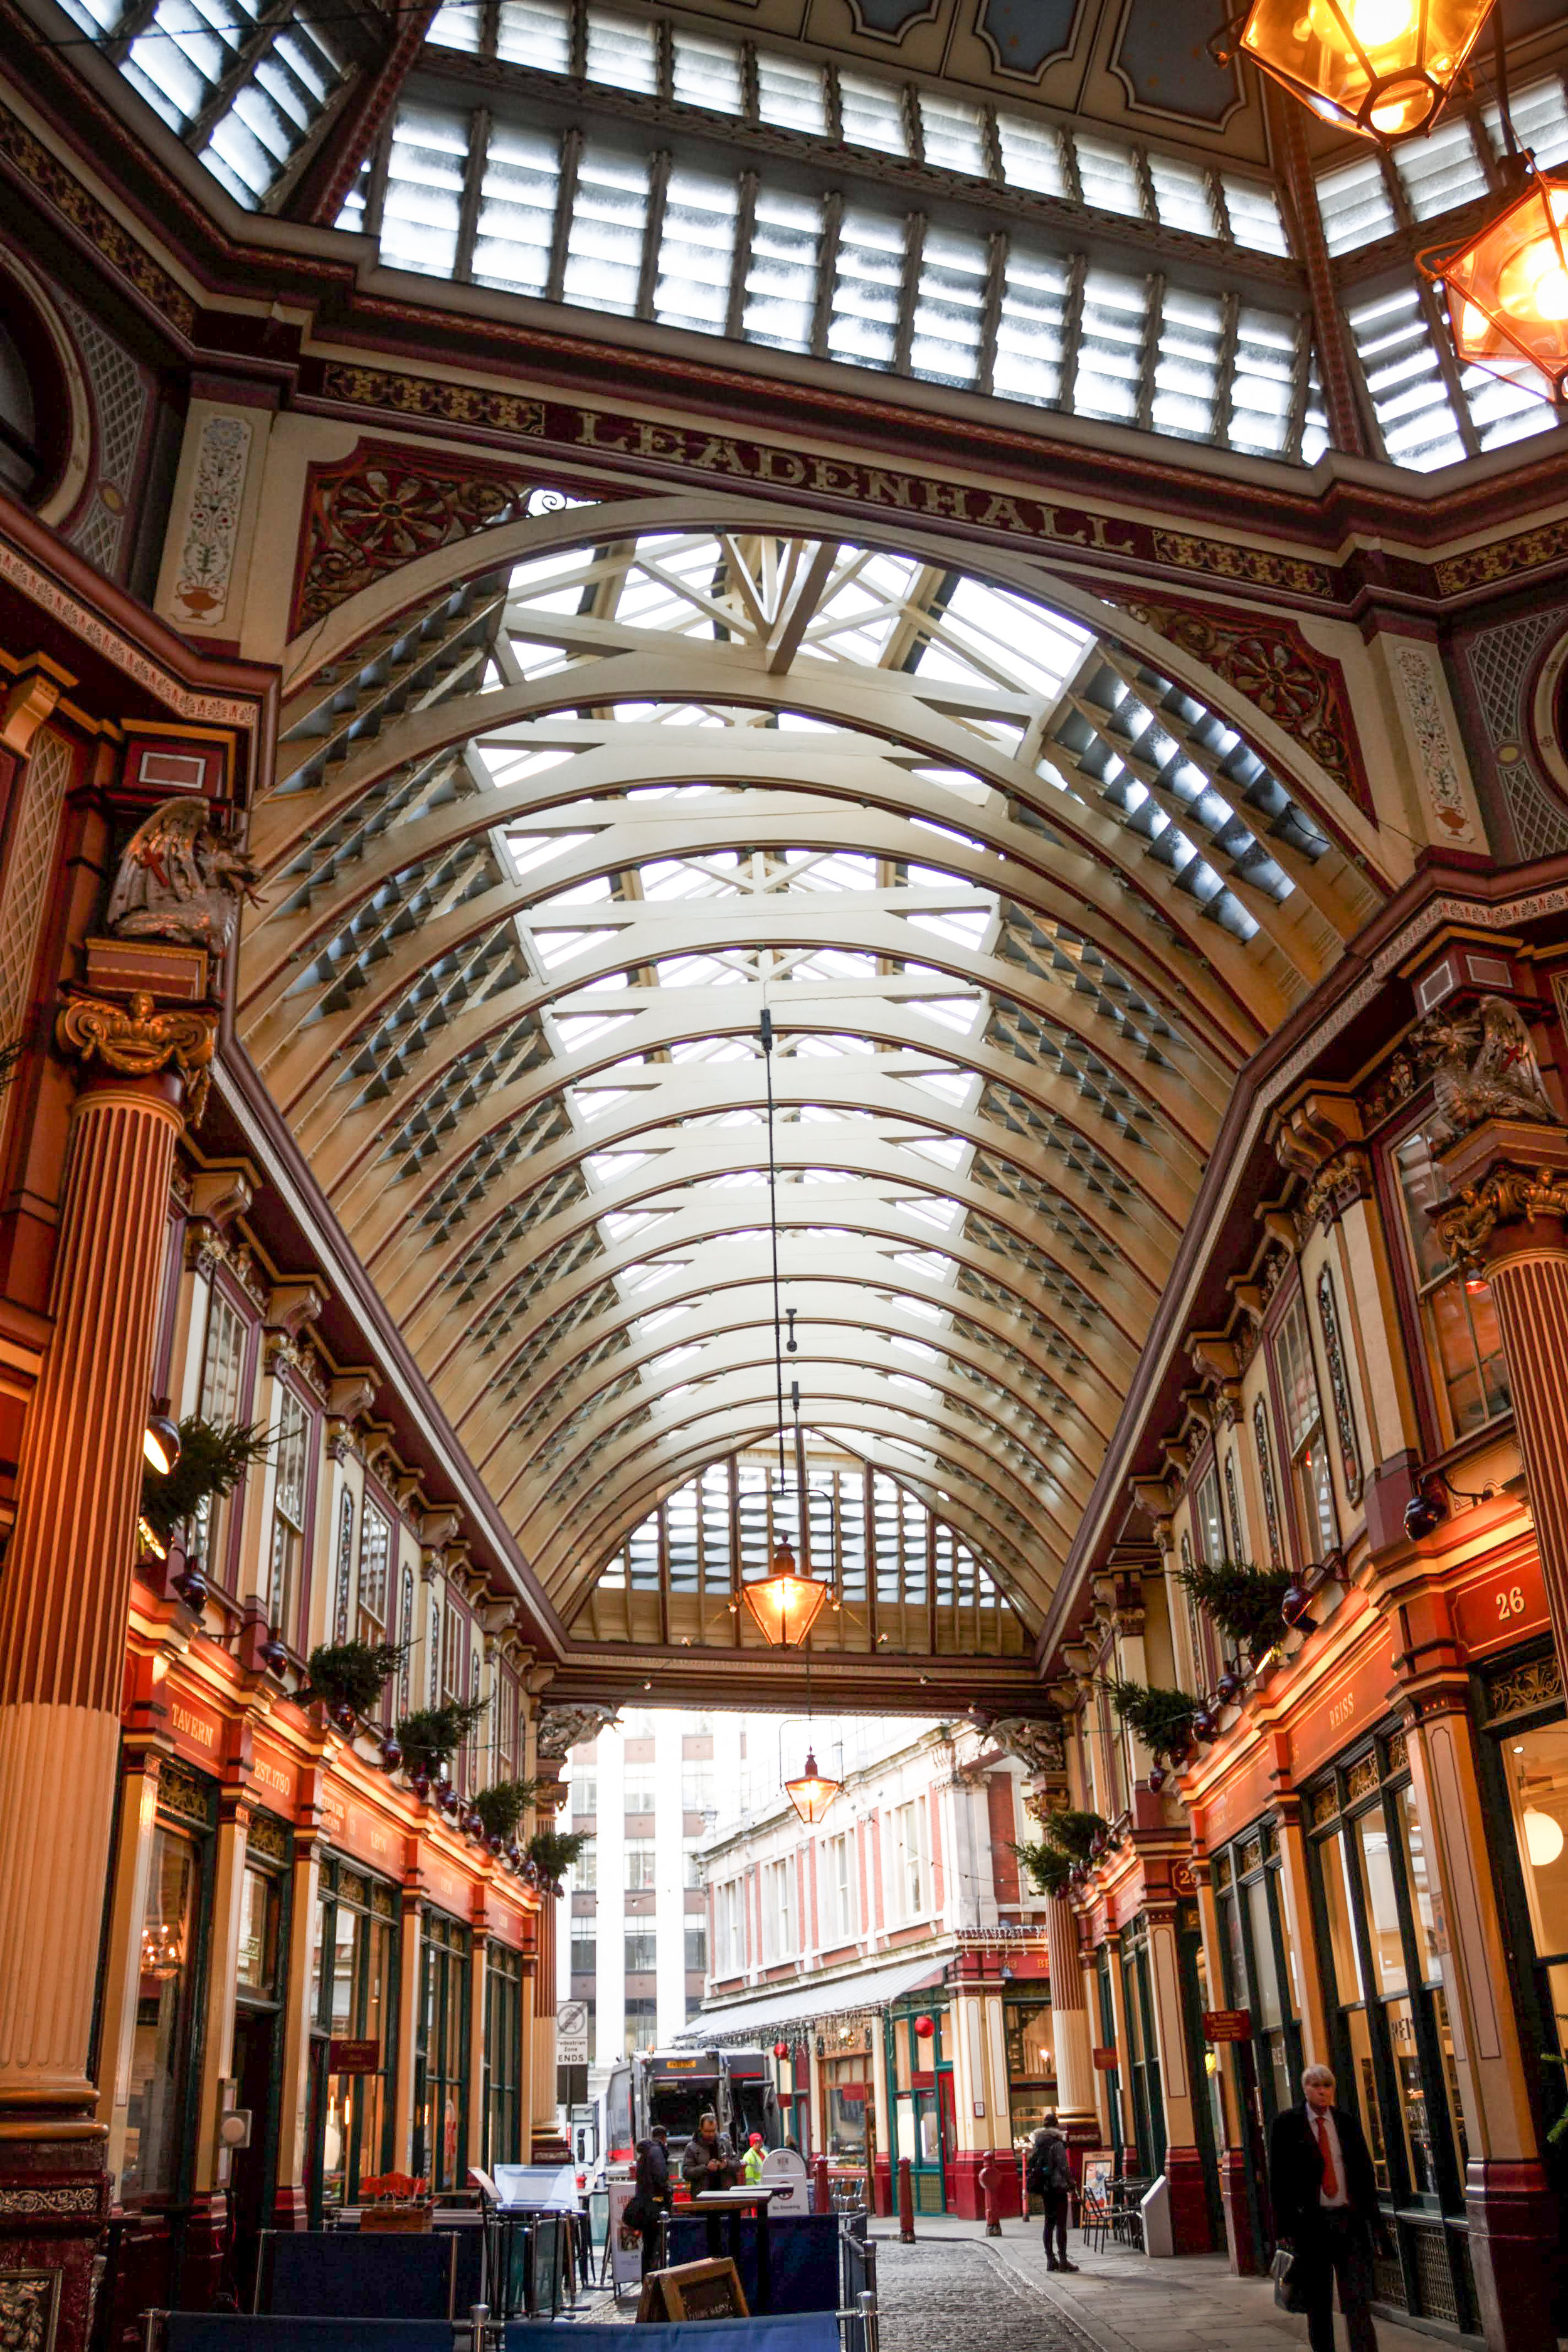 Leadenhall Market, getting ready for Christmastime